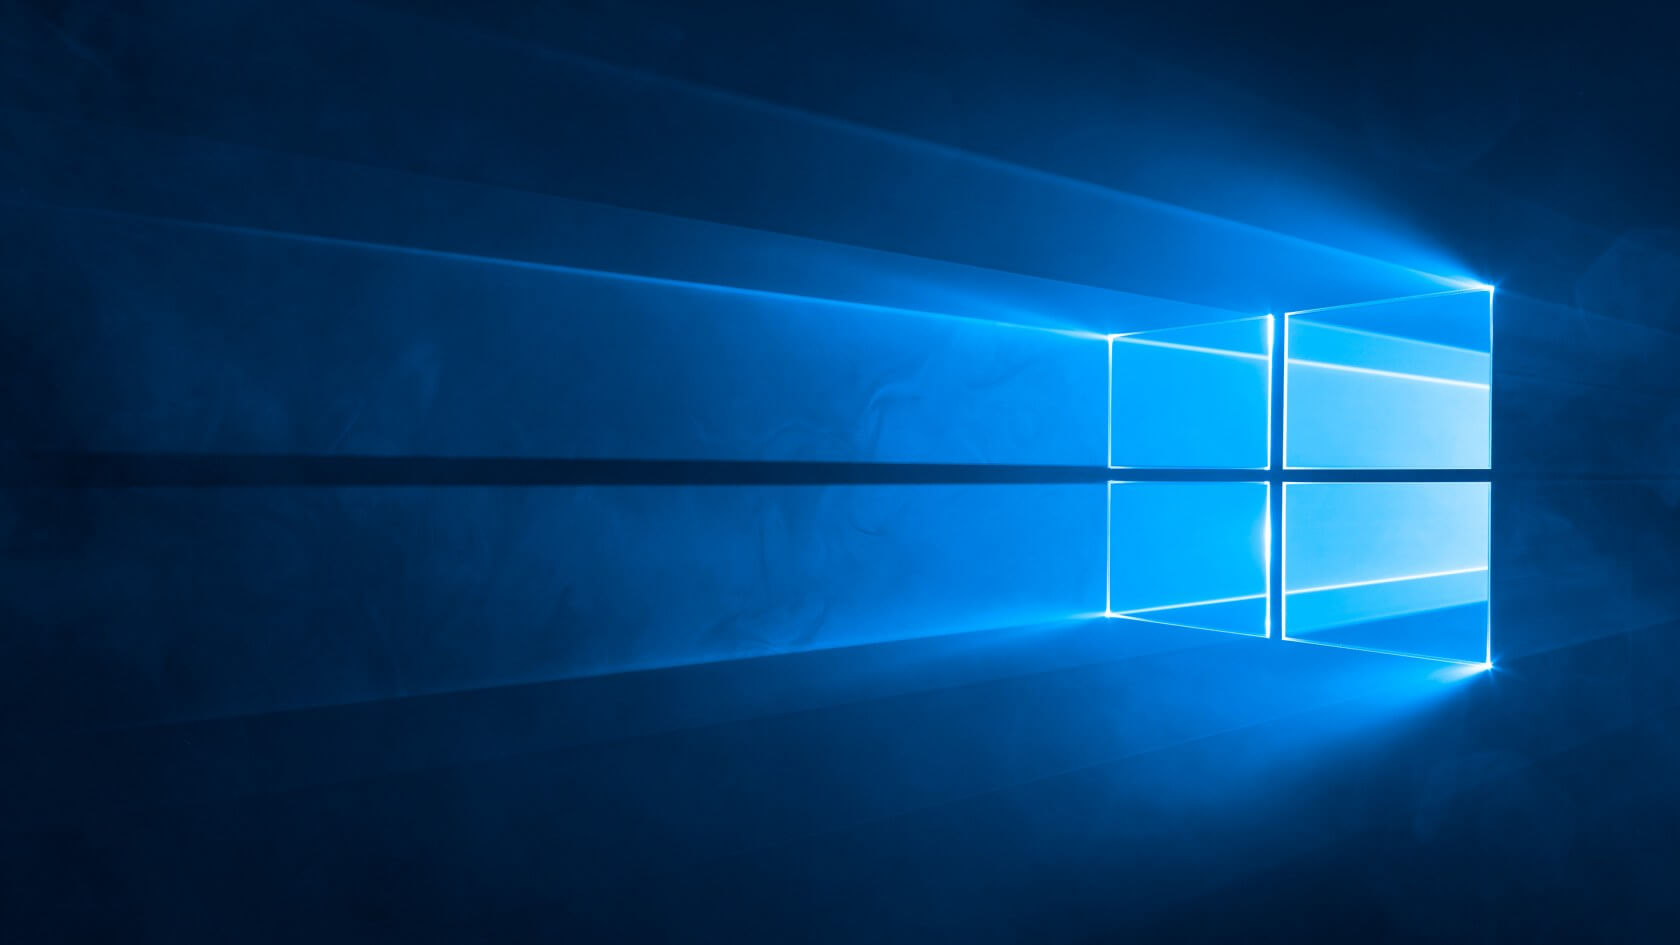 Microsoft rolls out Windows 10 'reliability' patch to fix update